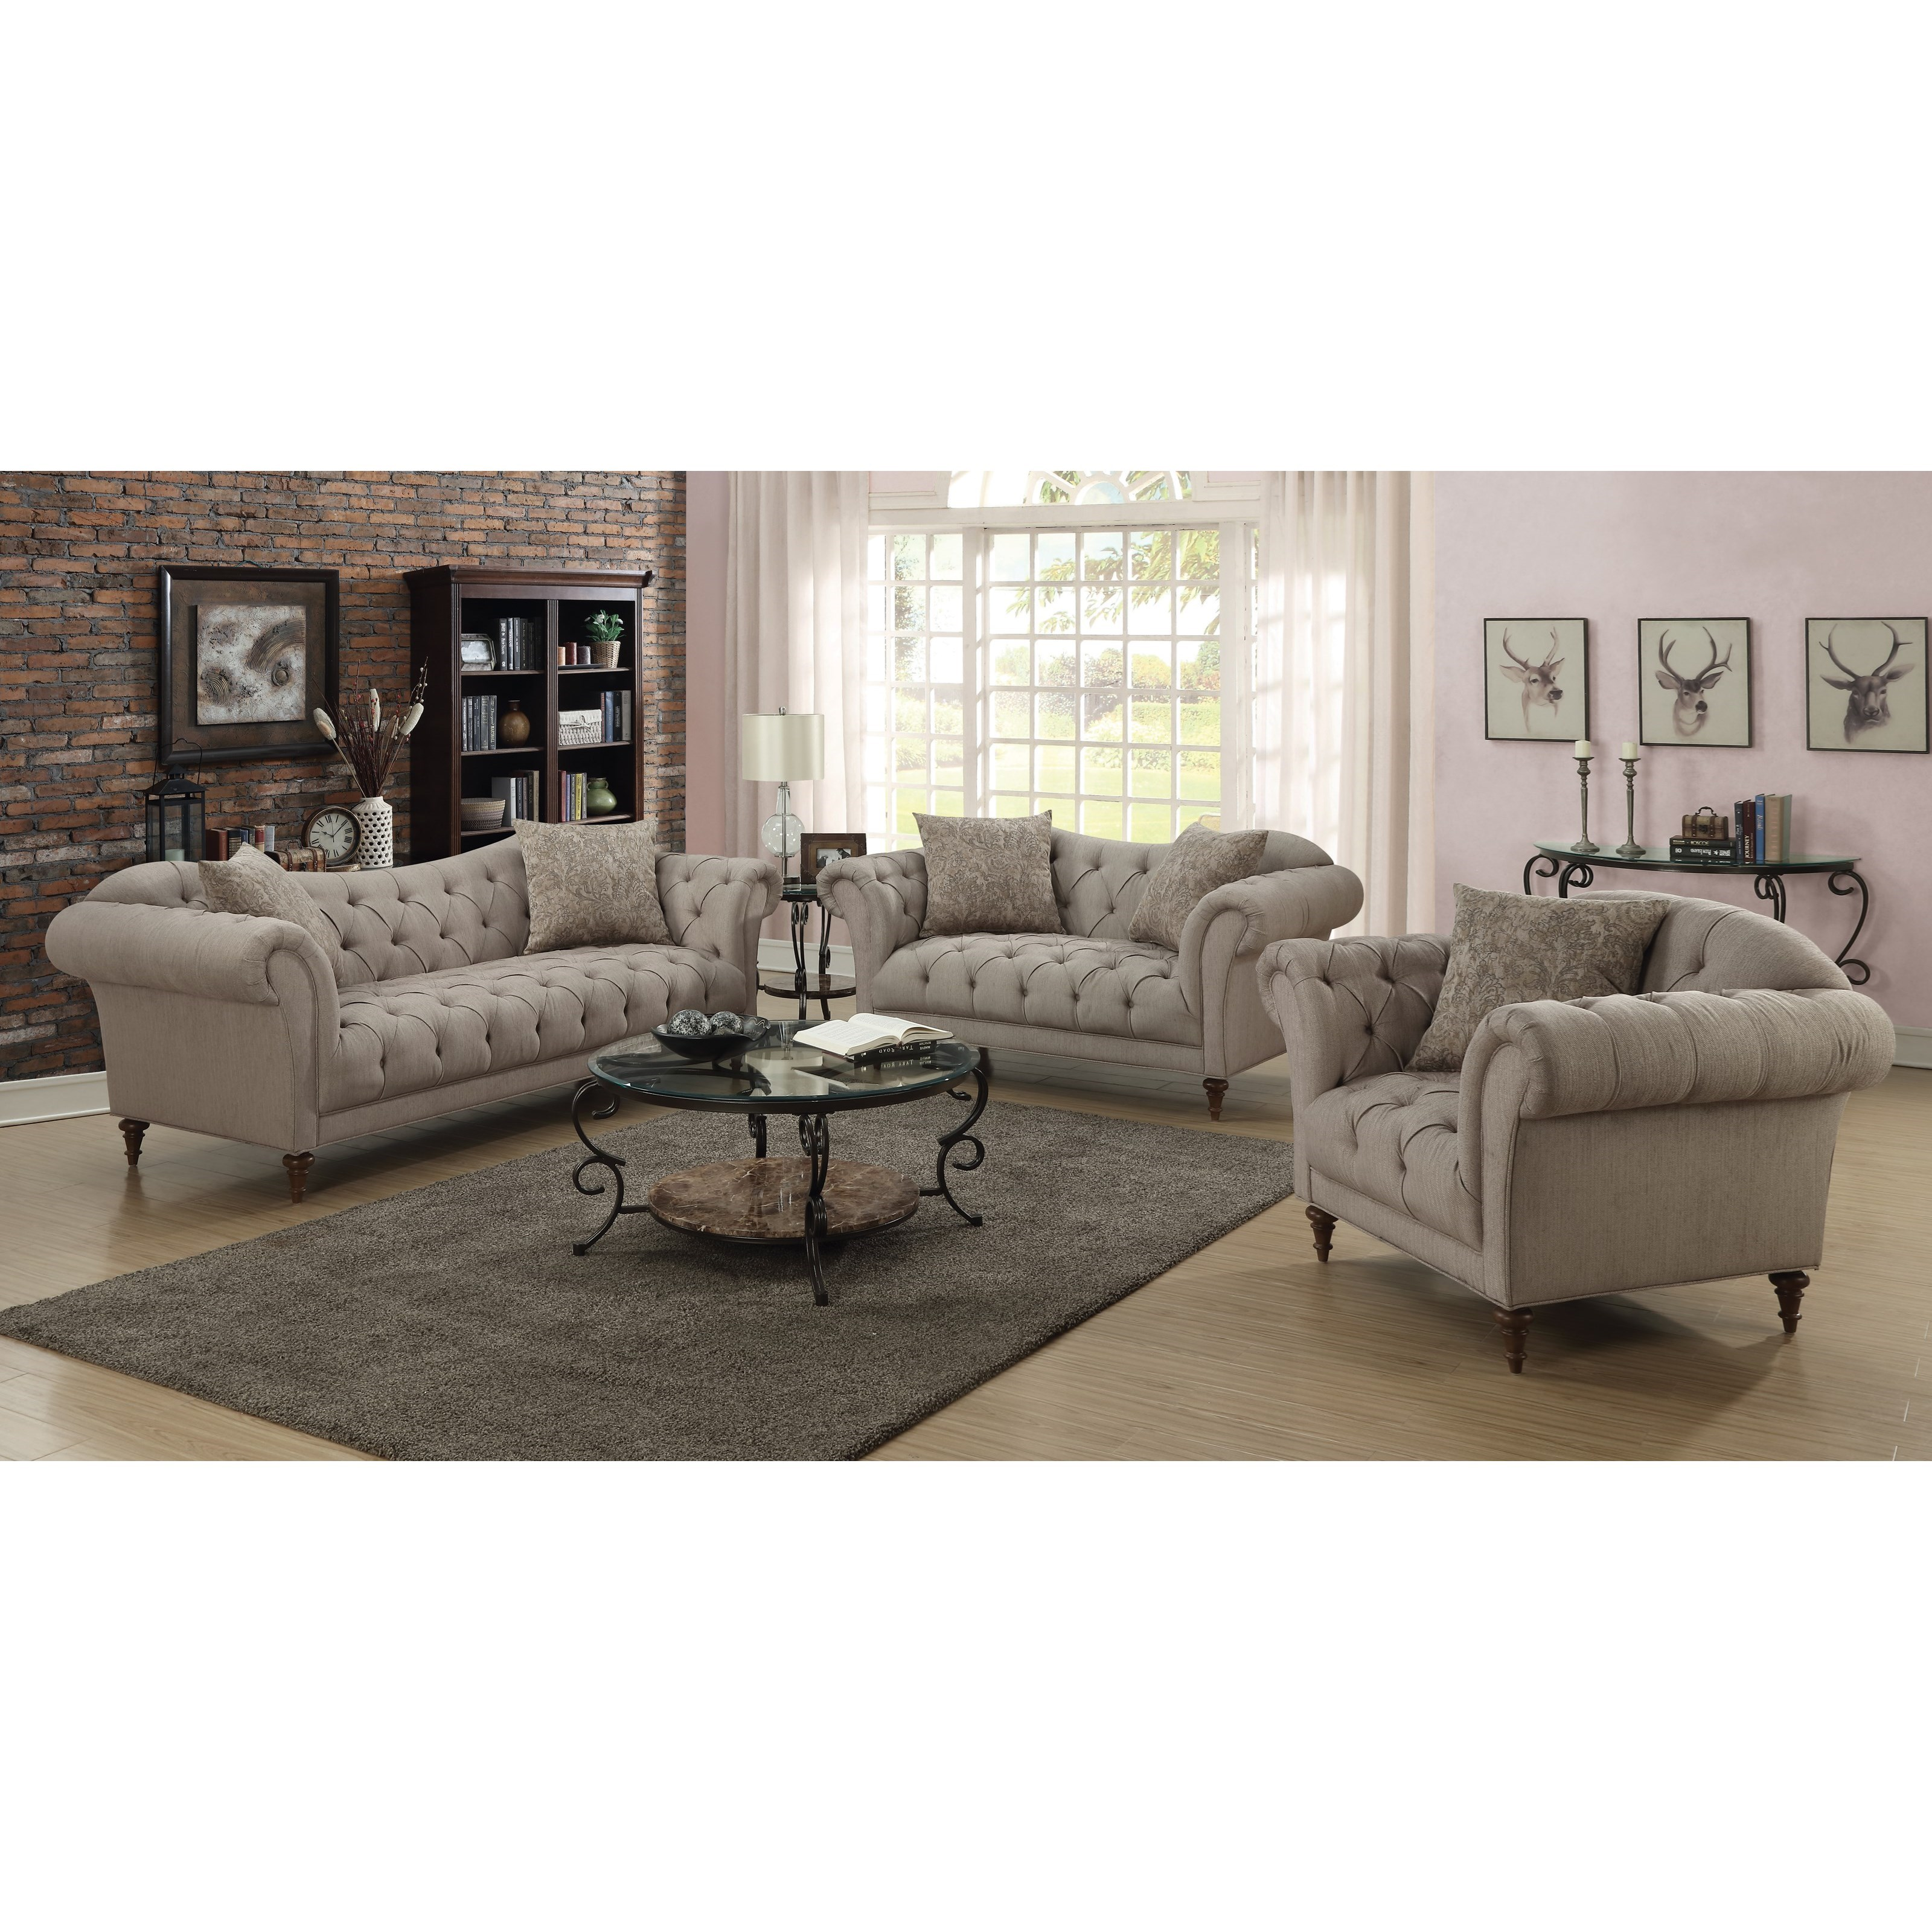 Alasdair Stationary Living Room Group by Coaster at Value City Furniture